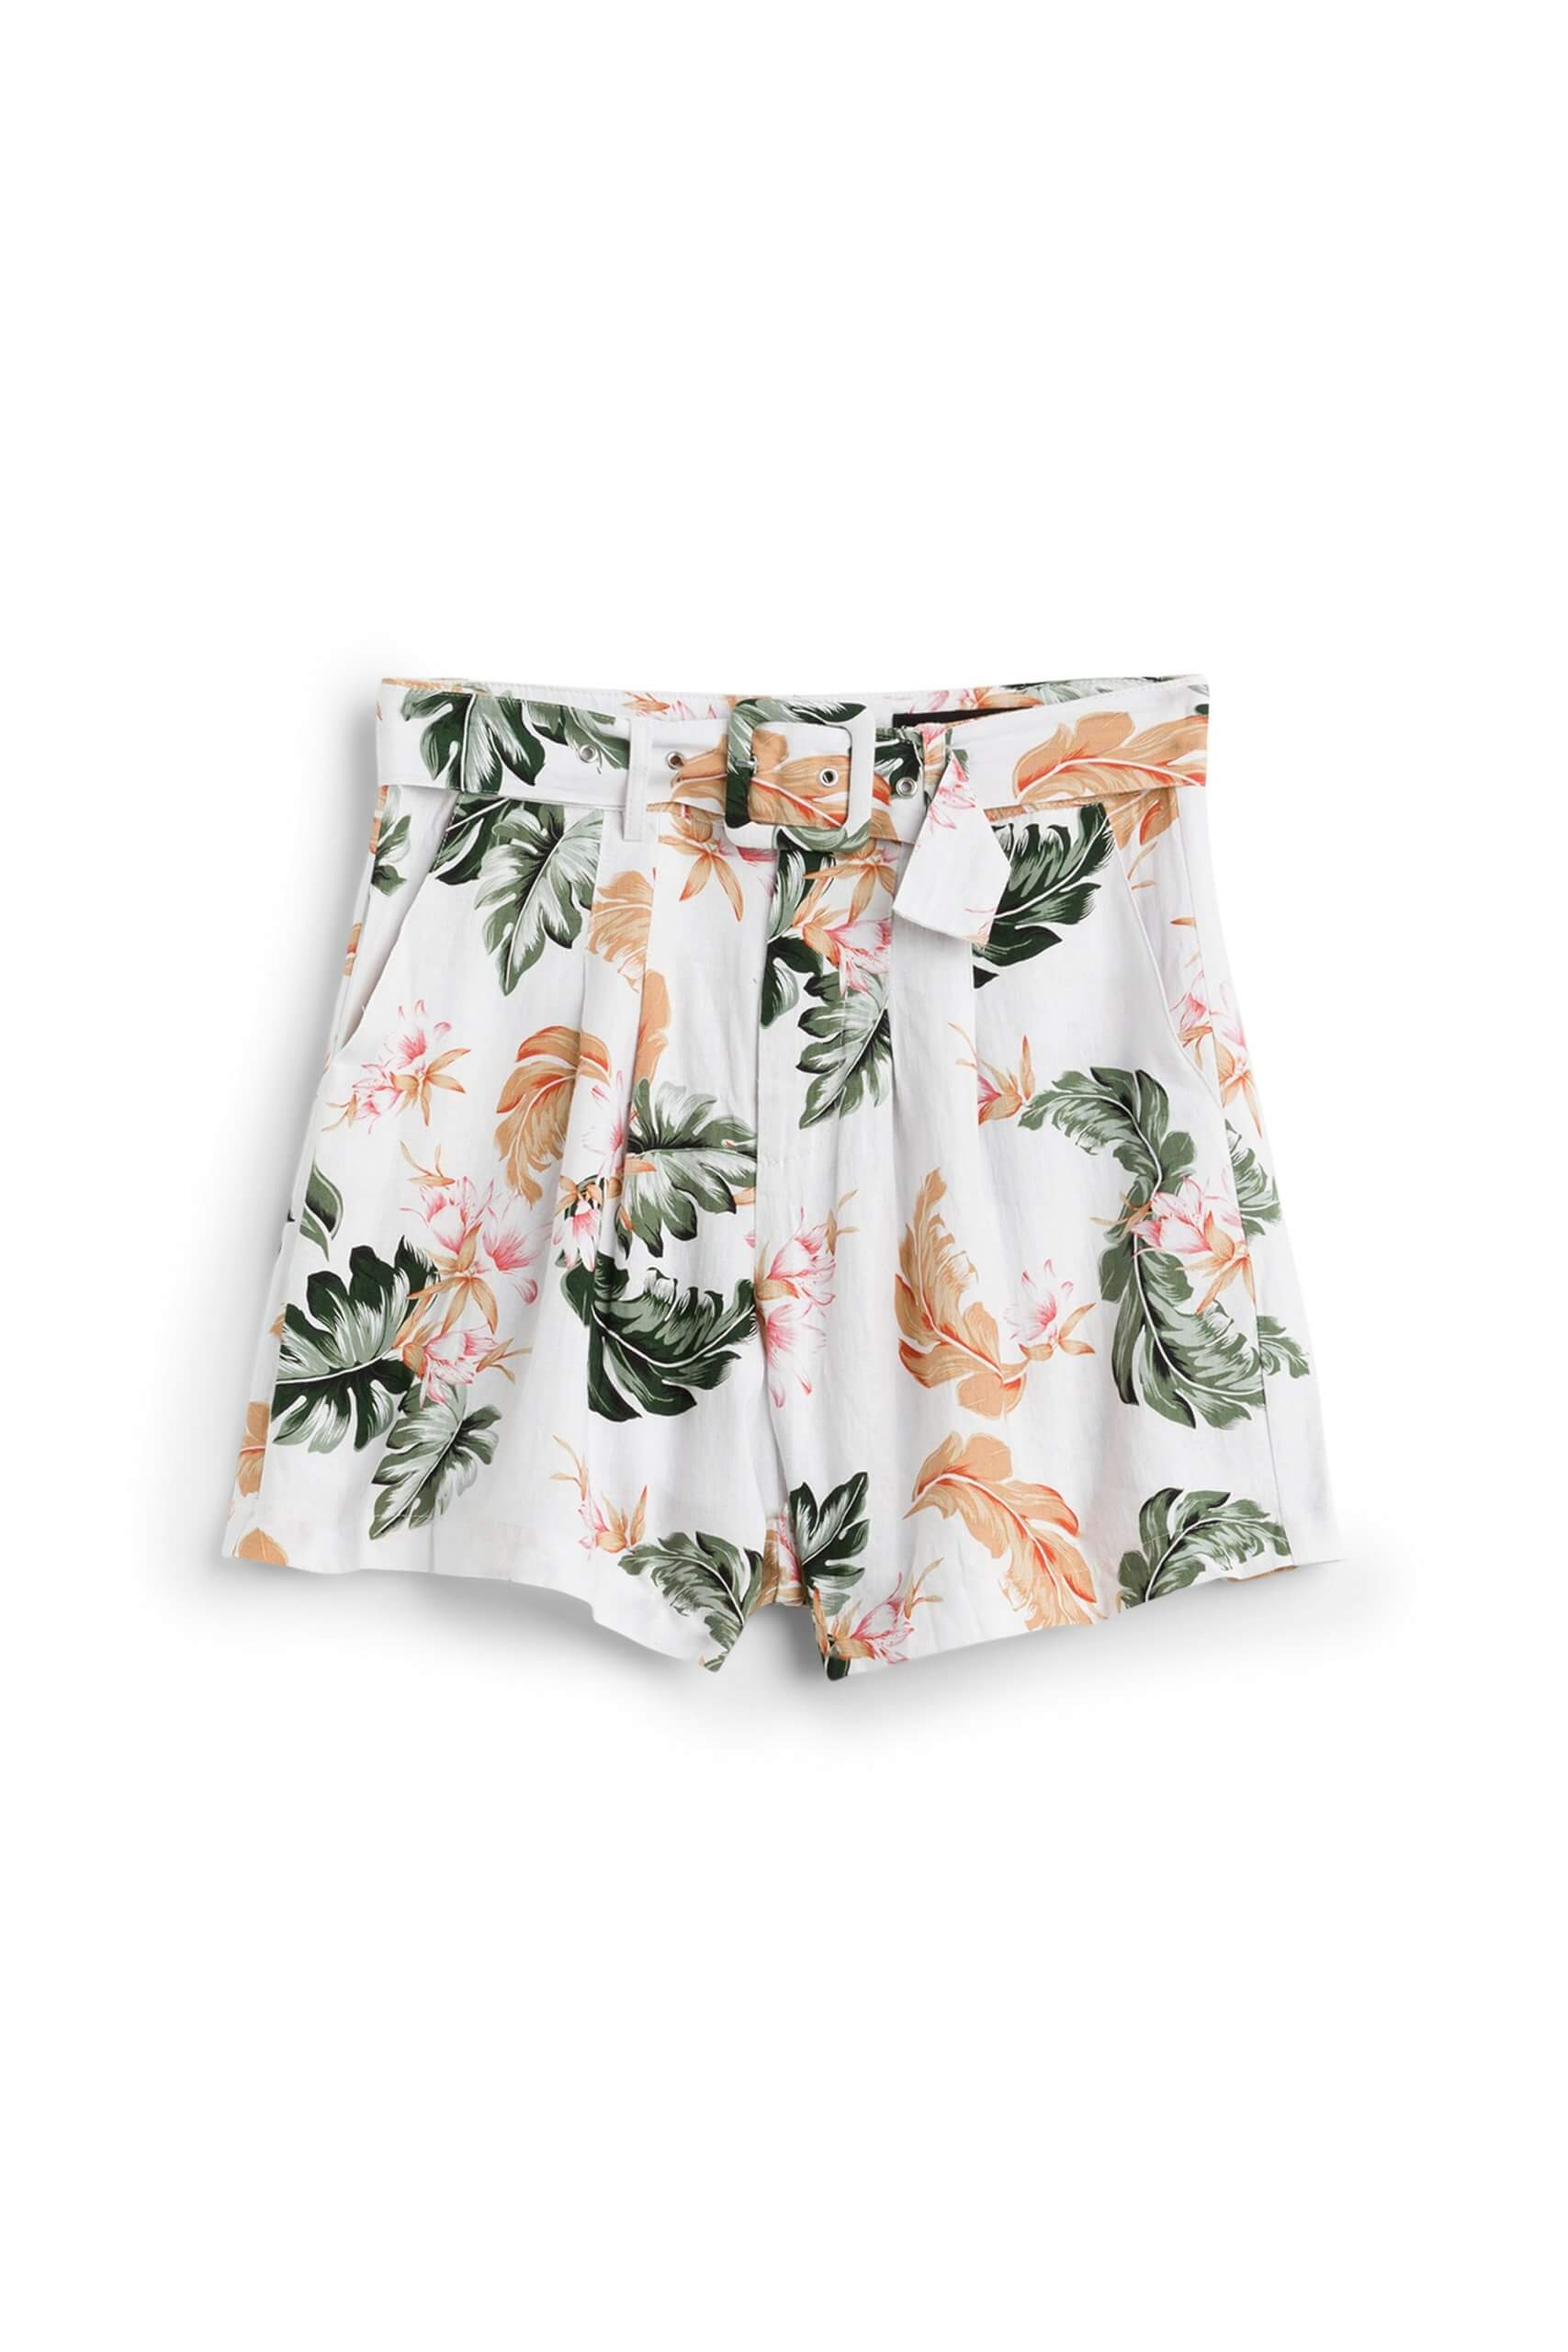 Stitch Fix Women's white, olive and orange tropical floral print shorts with belted waist.